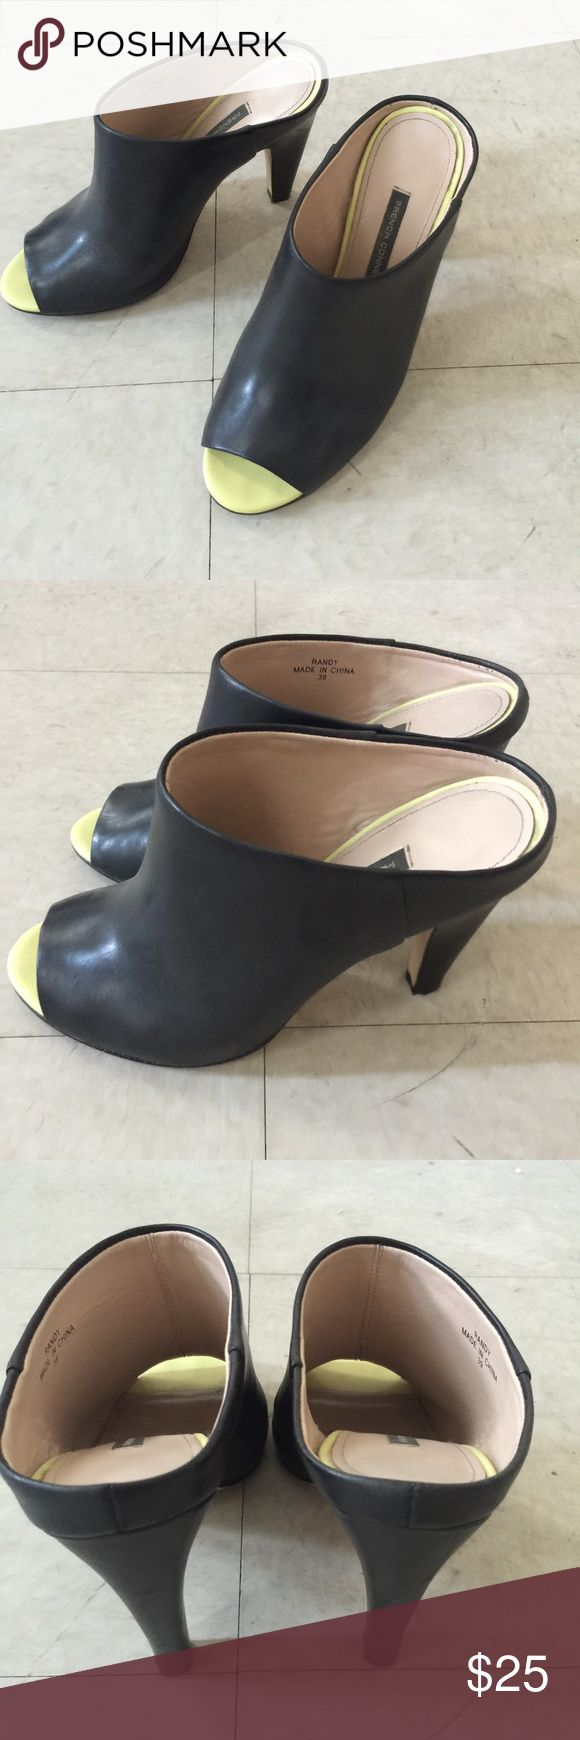 French Connection Randy Peep toe Mules Worn a couple times for photo shoots. French Connection Shoes Mules & Clogs